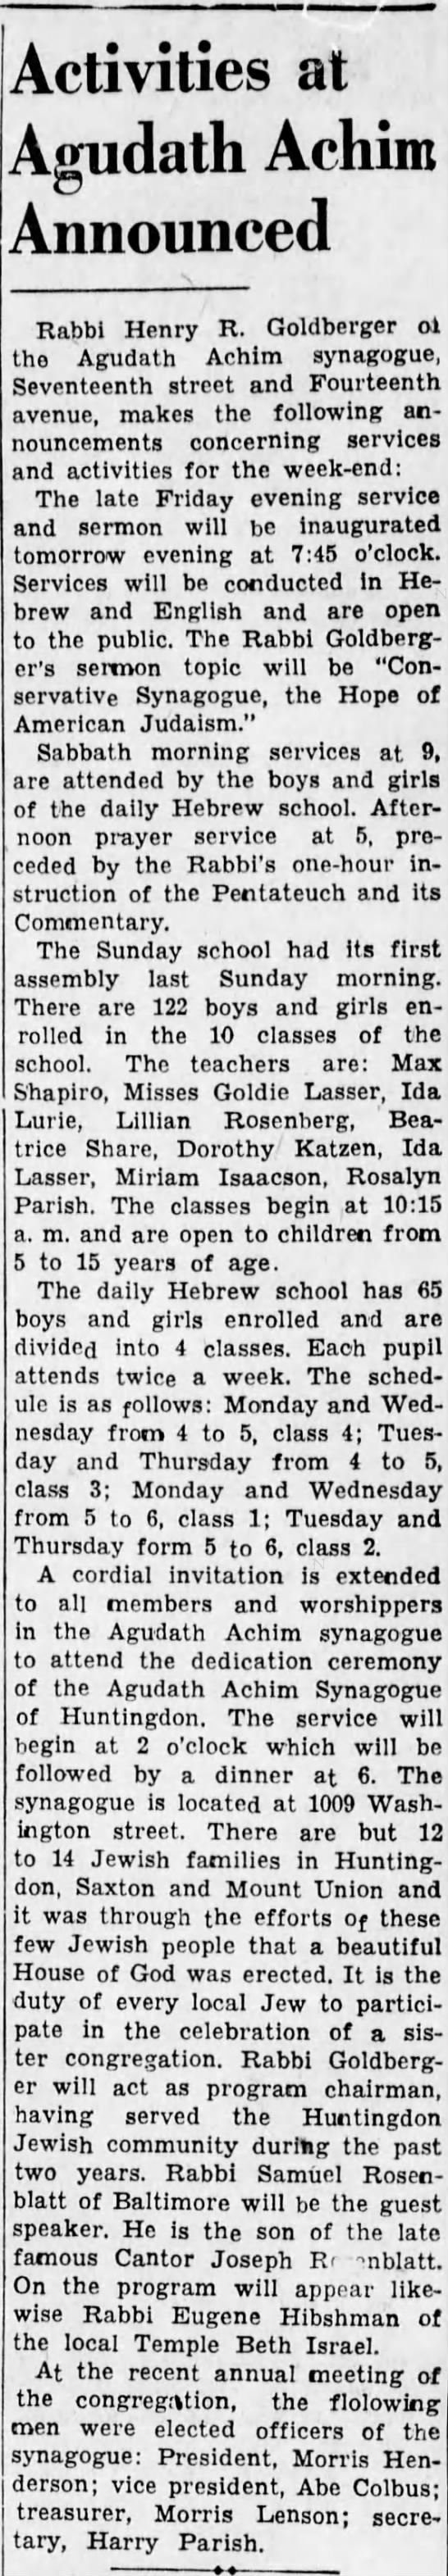 Morris elected secretary of Agudath Achim synagogue- 15 October 1936